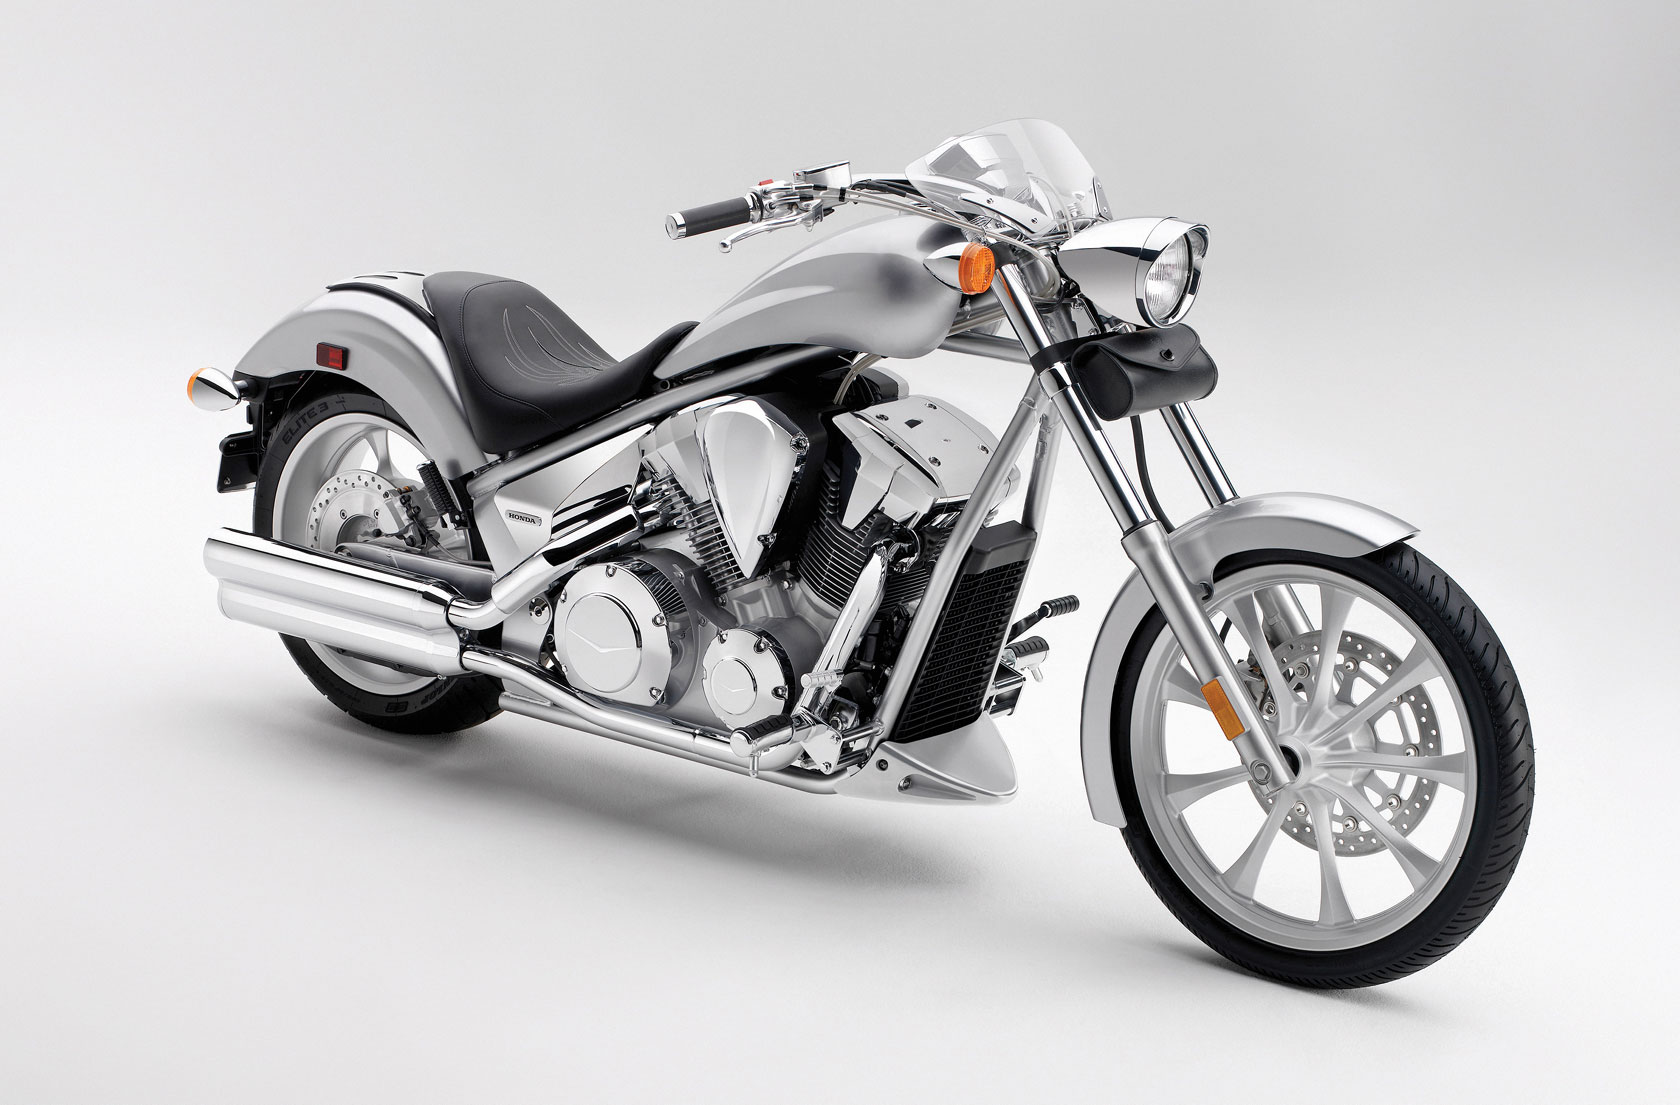 Honda Fury ABS 2015 images #83357